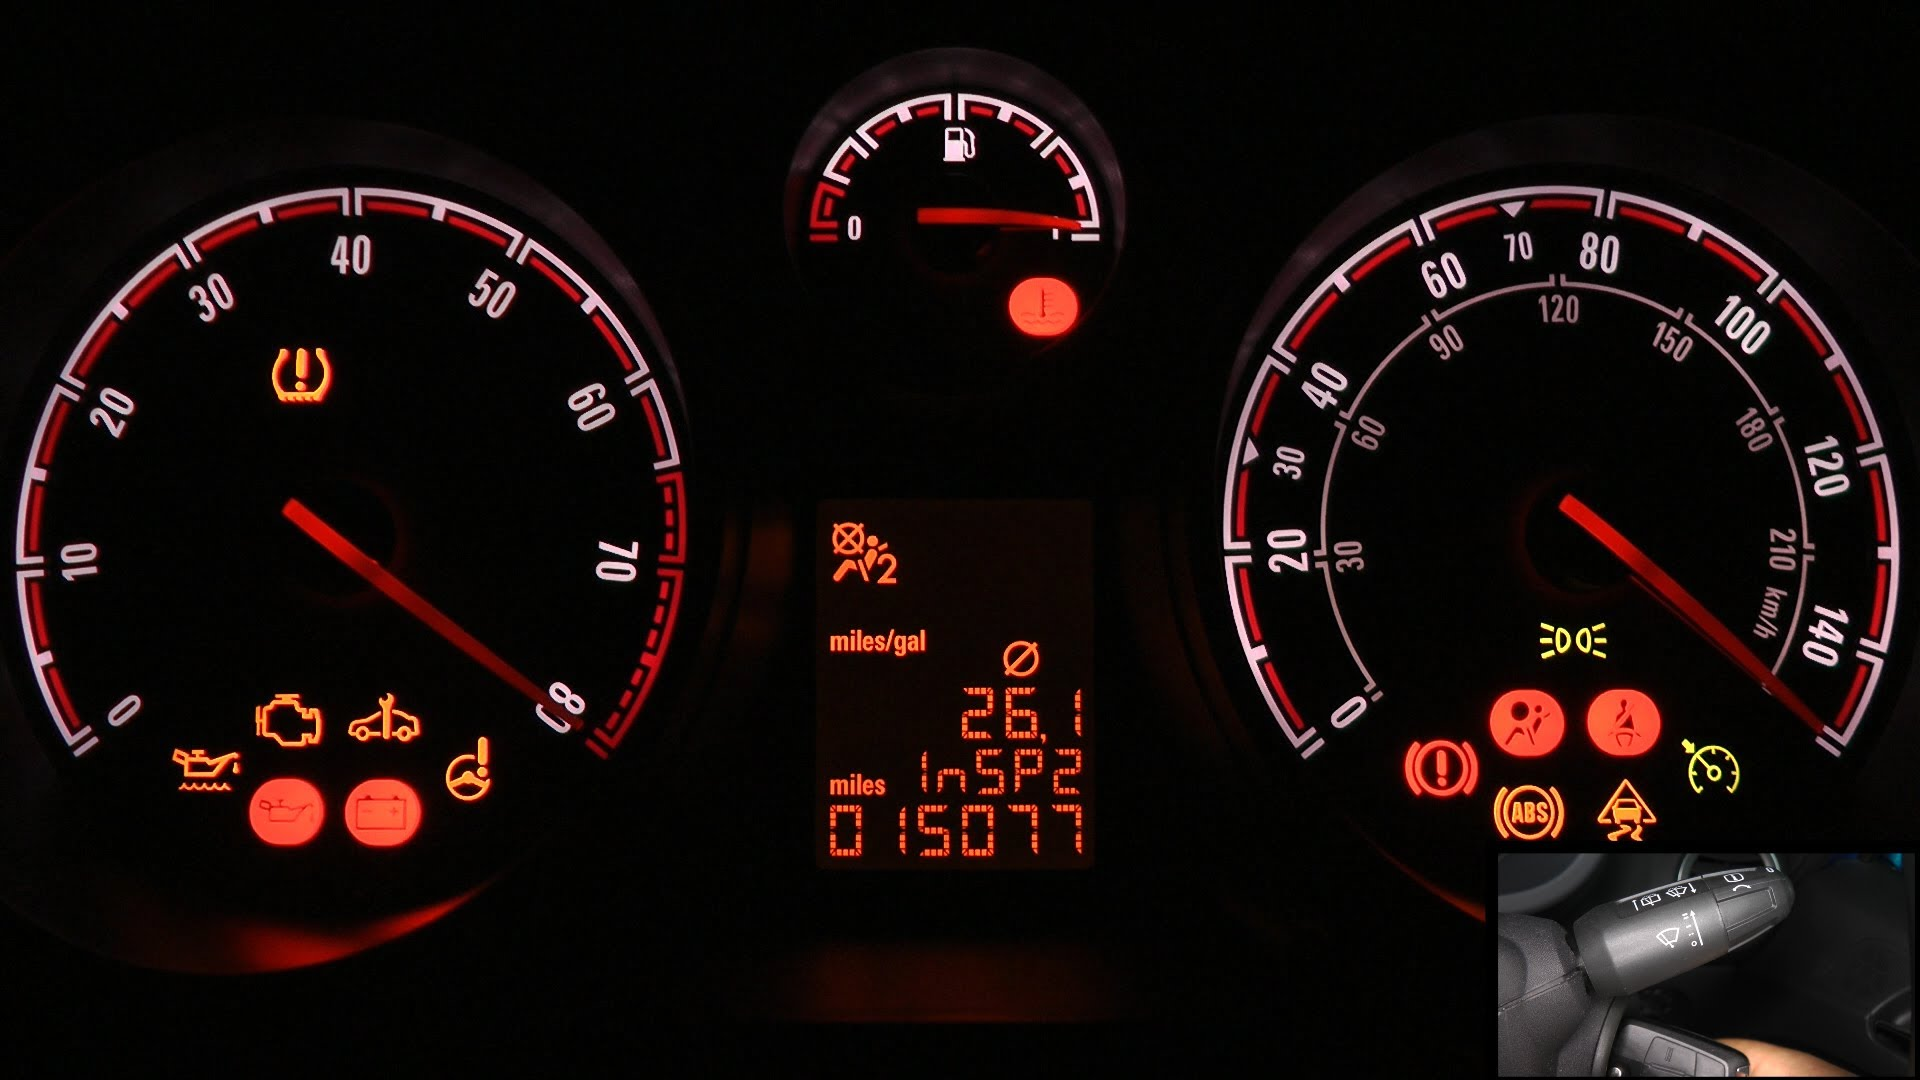 Bhakti Yoga Meditations 2008 Saturn Astra Fuse Box Diagram My Wallpaper Suffering Like Car Warning Lights Is A Helpful Indicator